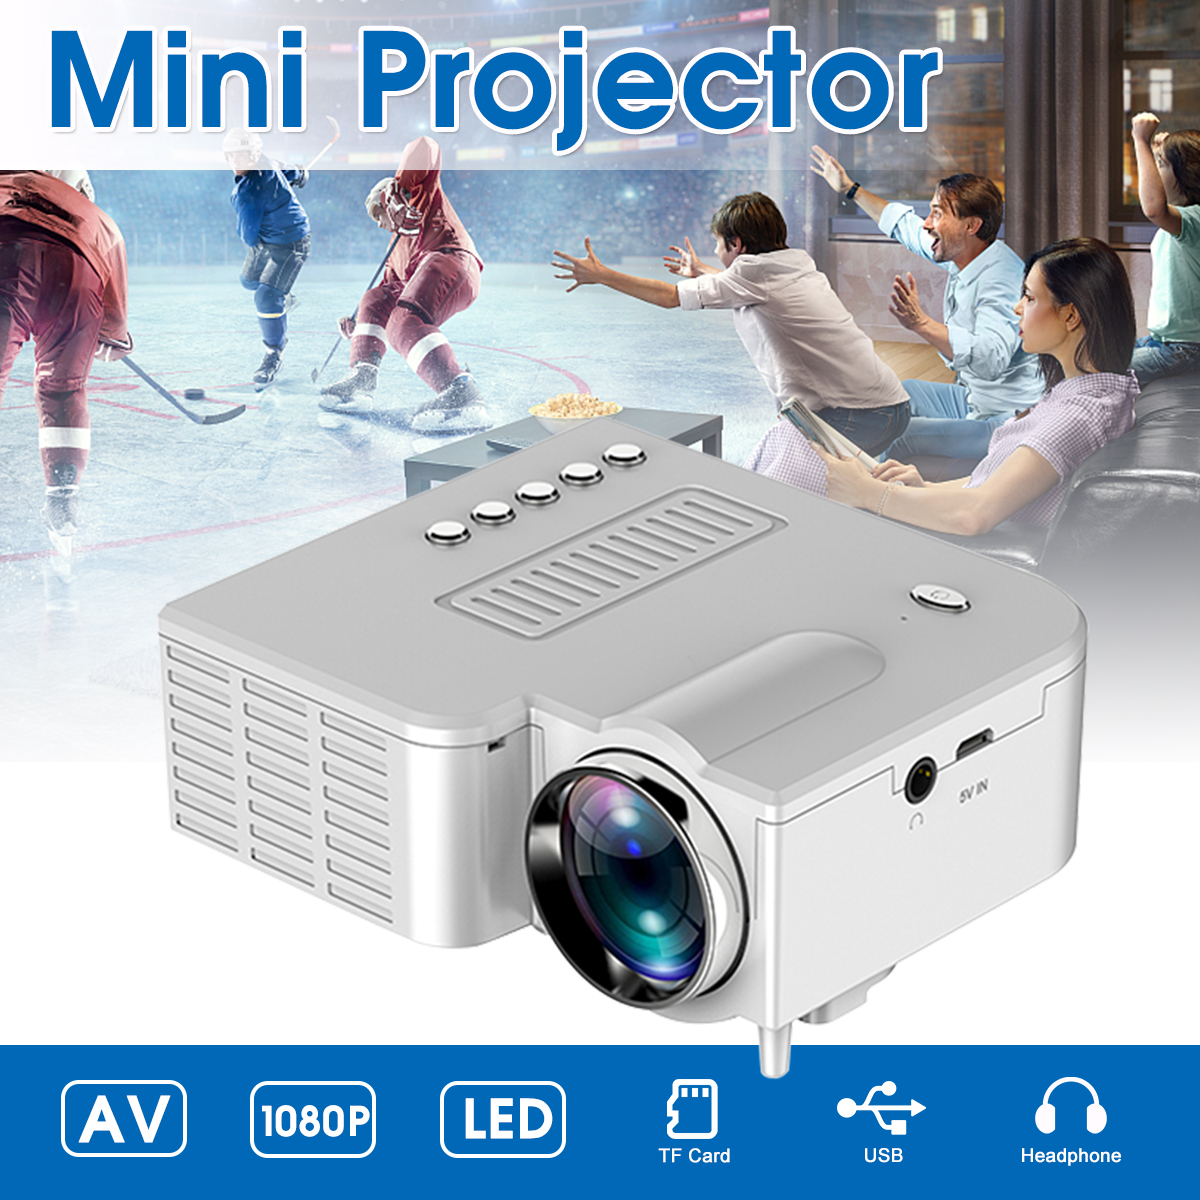 Portable LED Mini Projector Video Beamer for Home Cinema 500 Lumens Support HD Display 4k projector 4K led projector 1920x1080 image